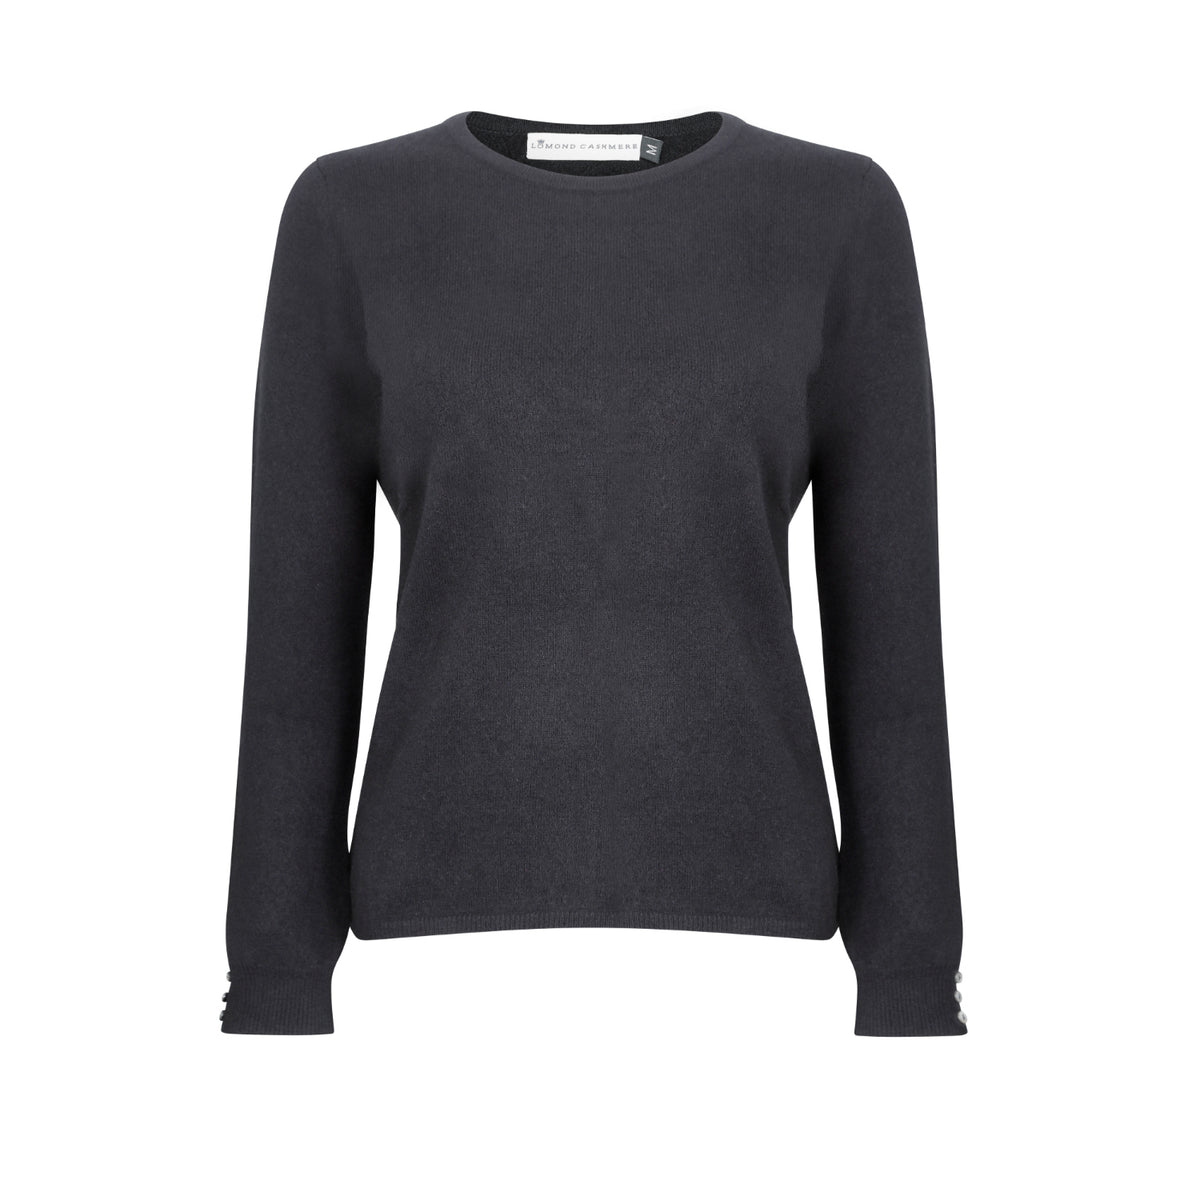 Lomond Cashmere | Ladies 2-Ply Cashmere Round Neck | Black | Shop now at The Cashmere Choice | London